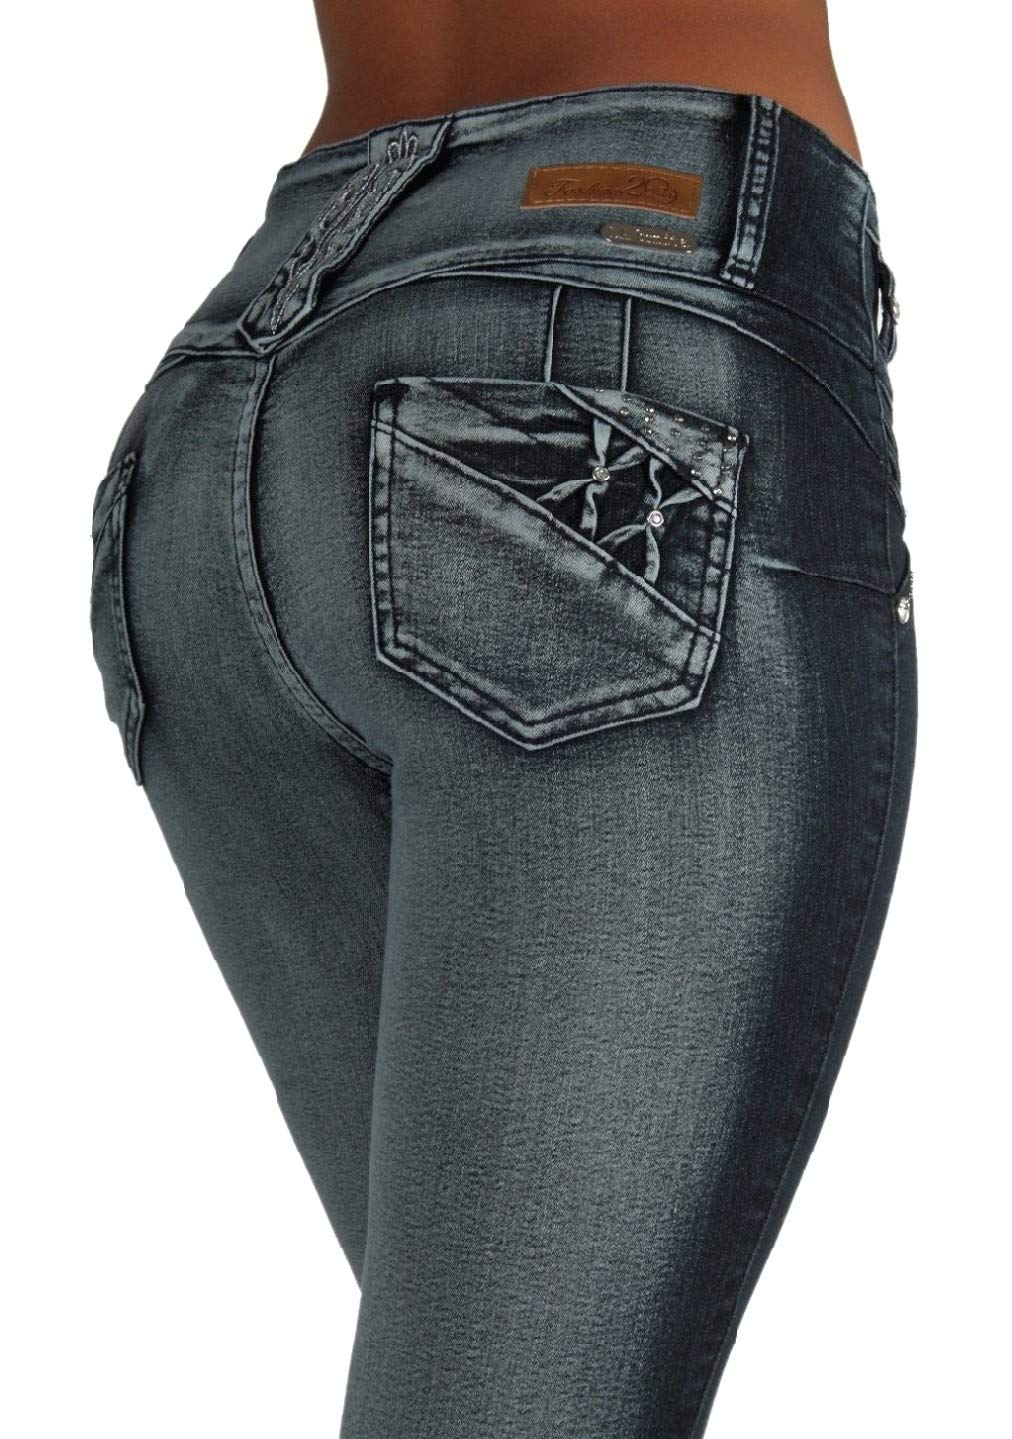 Style LA6A154aS – Colombian Design, Mid Waist, Butt Lift, Skinny Jeans in Washed Dark Blue Size 17